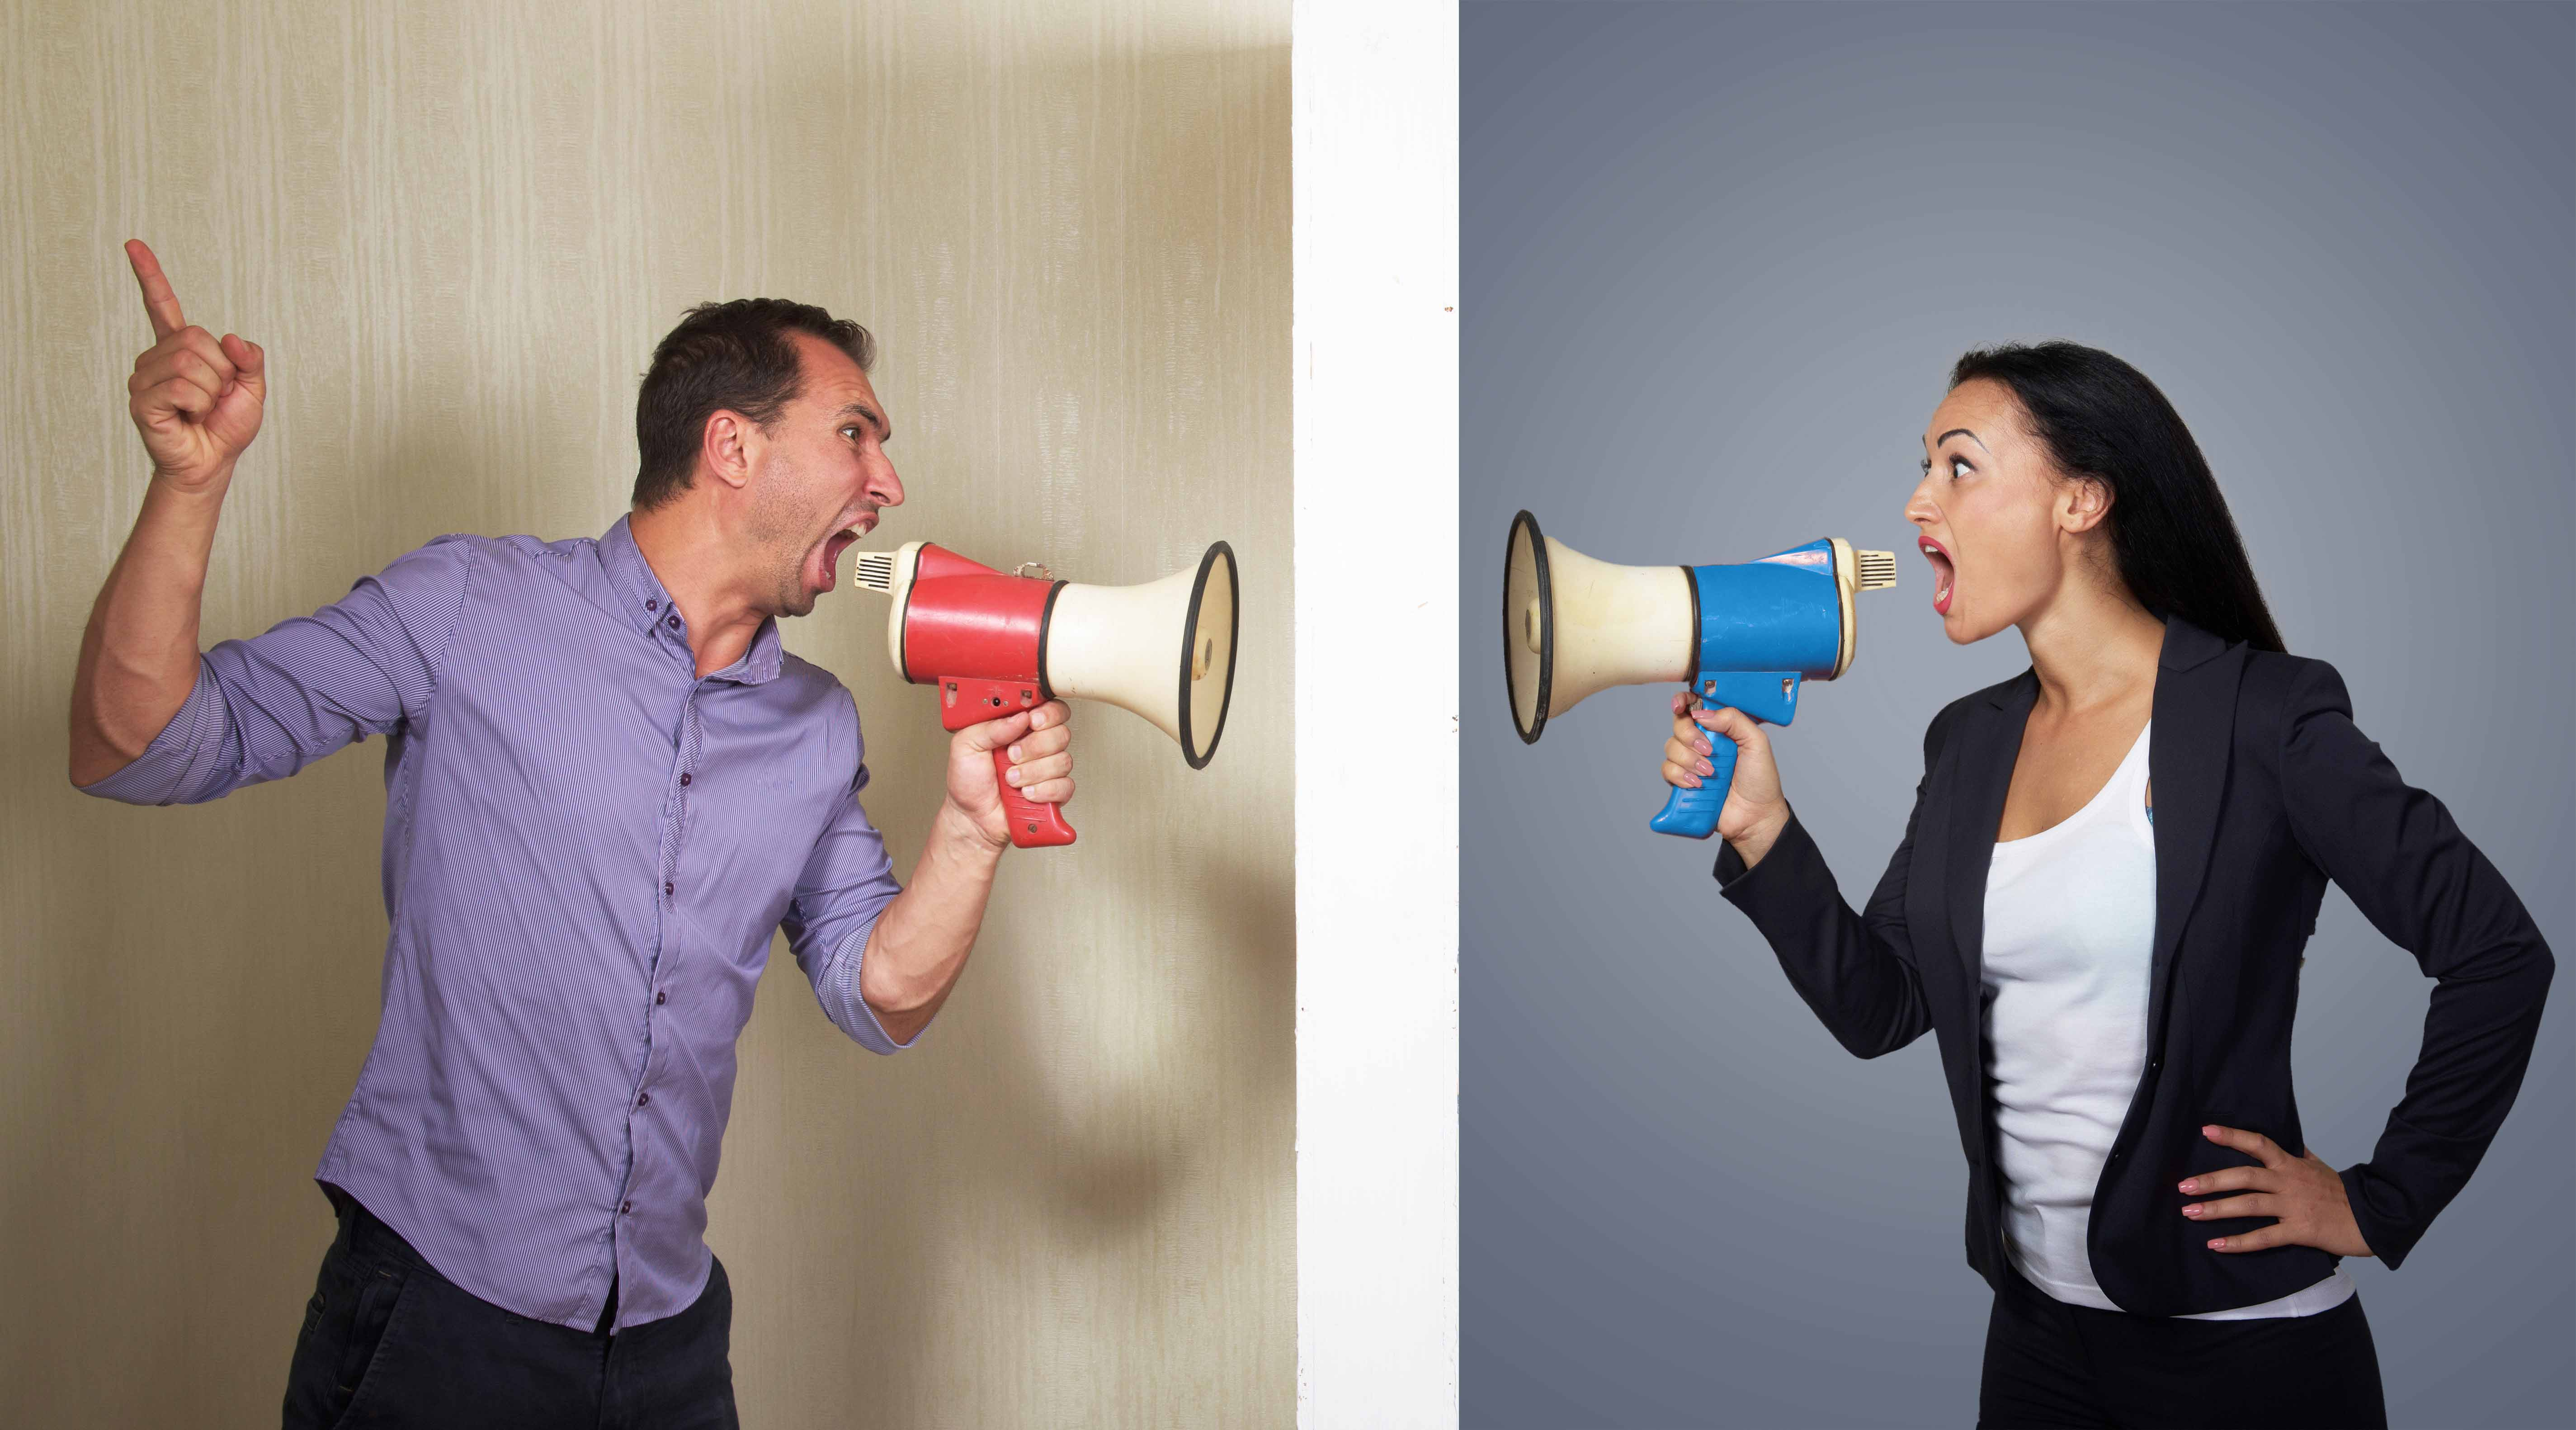 Man and woman shouting in megaphones at each other